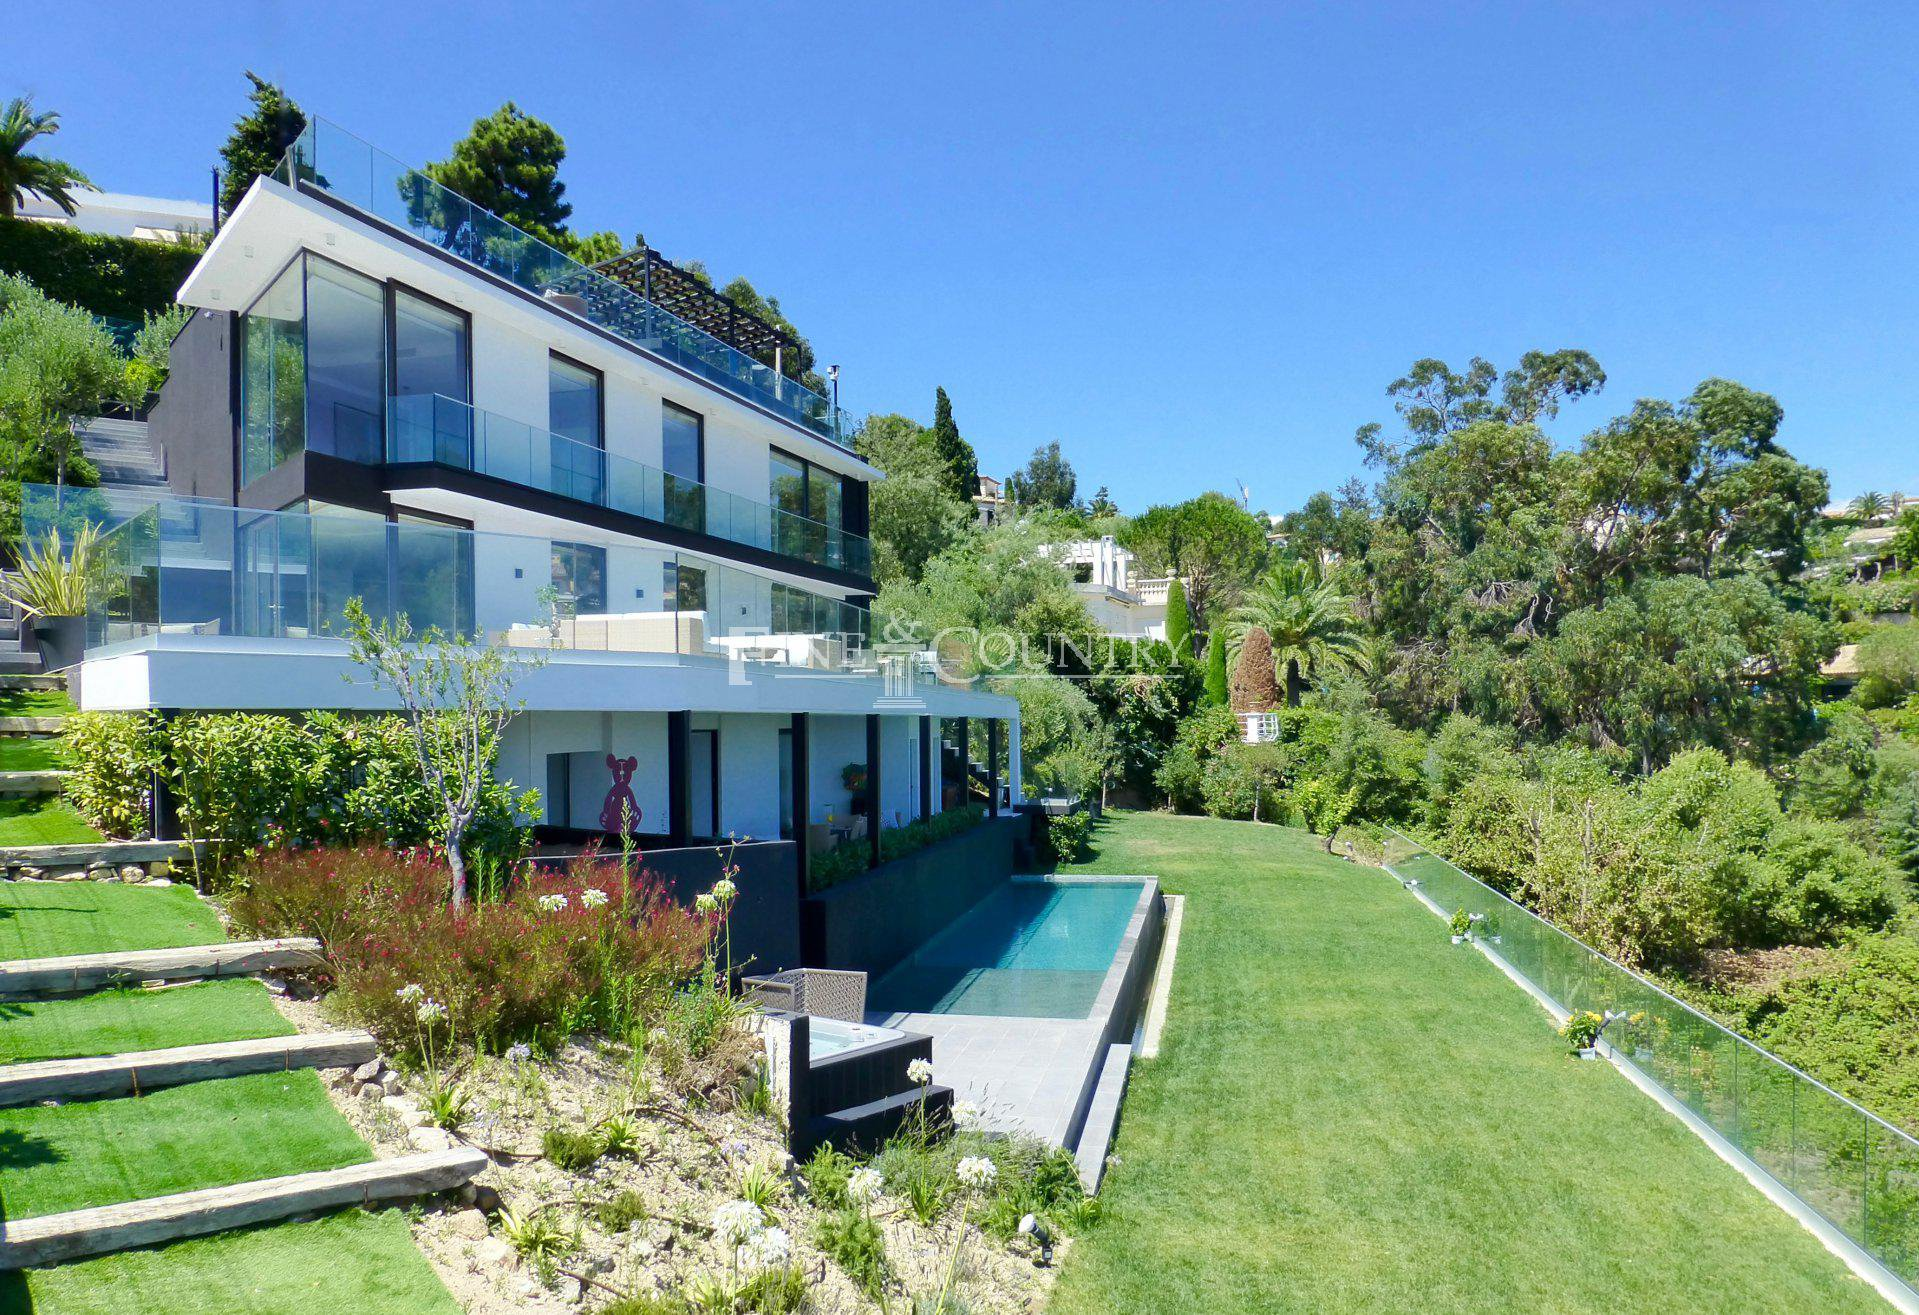 Modern luxury villa for sale in La Californie, Cannes